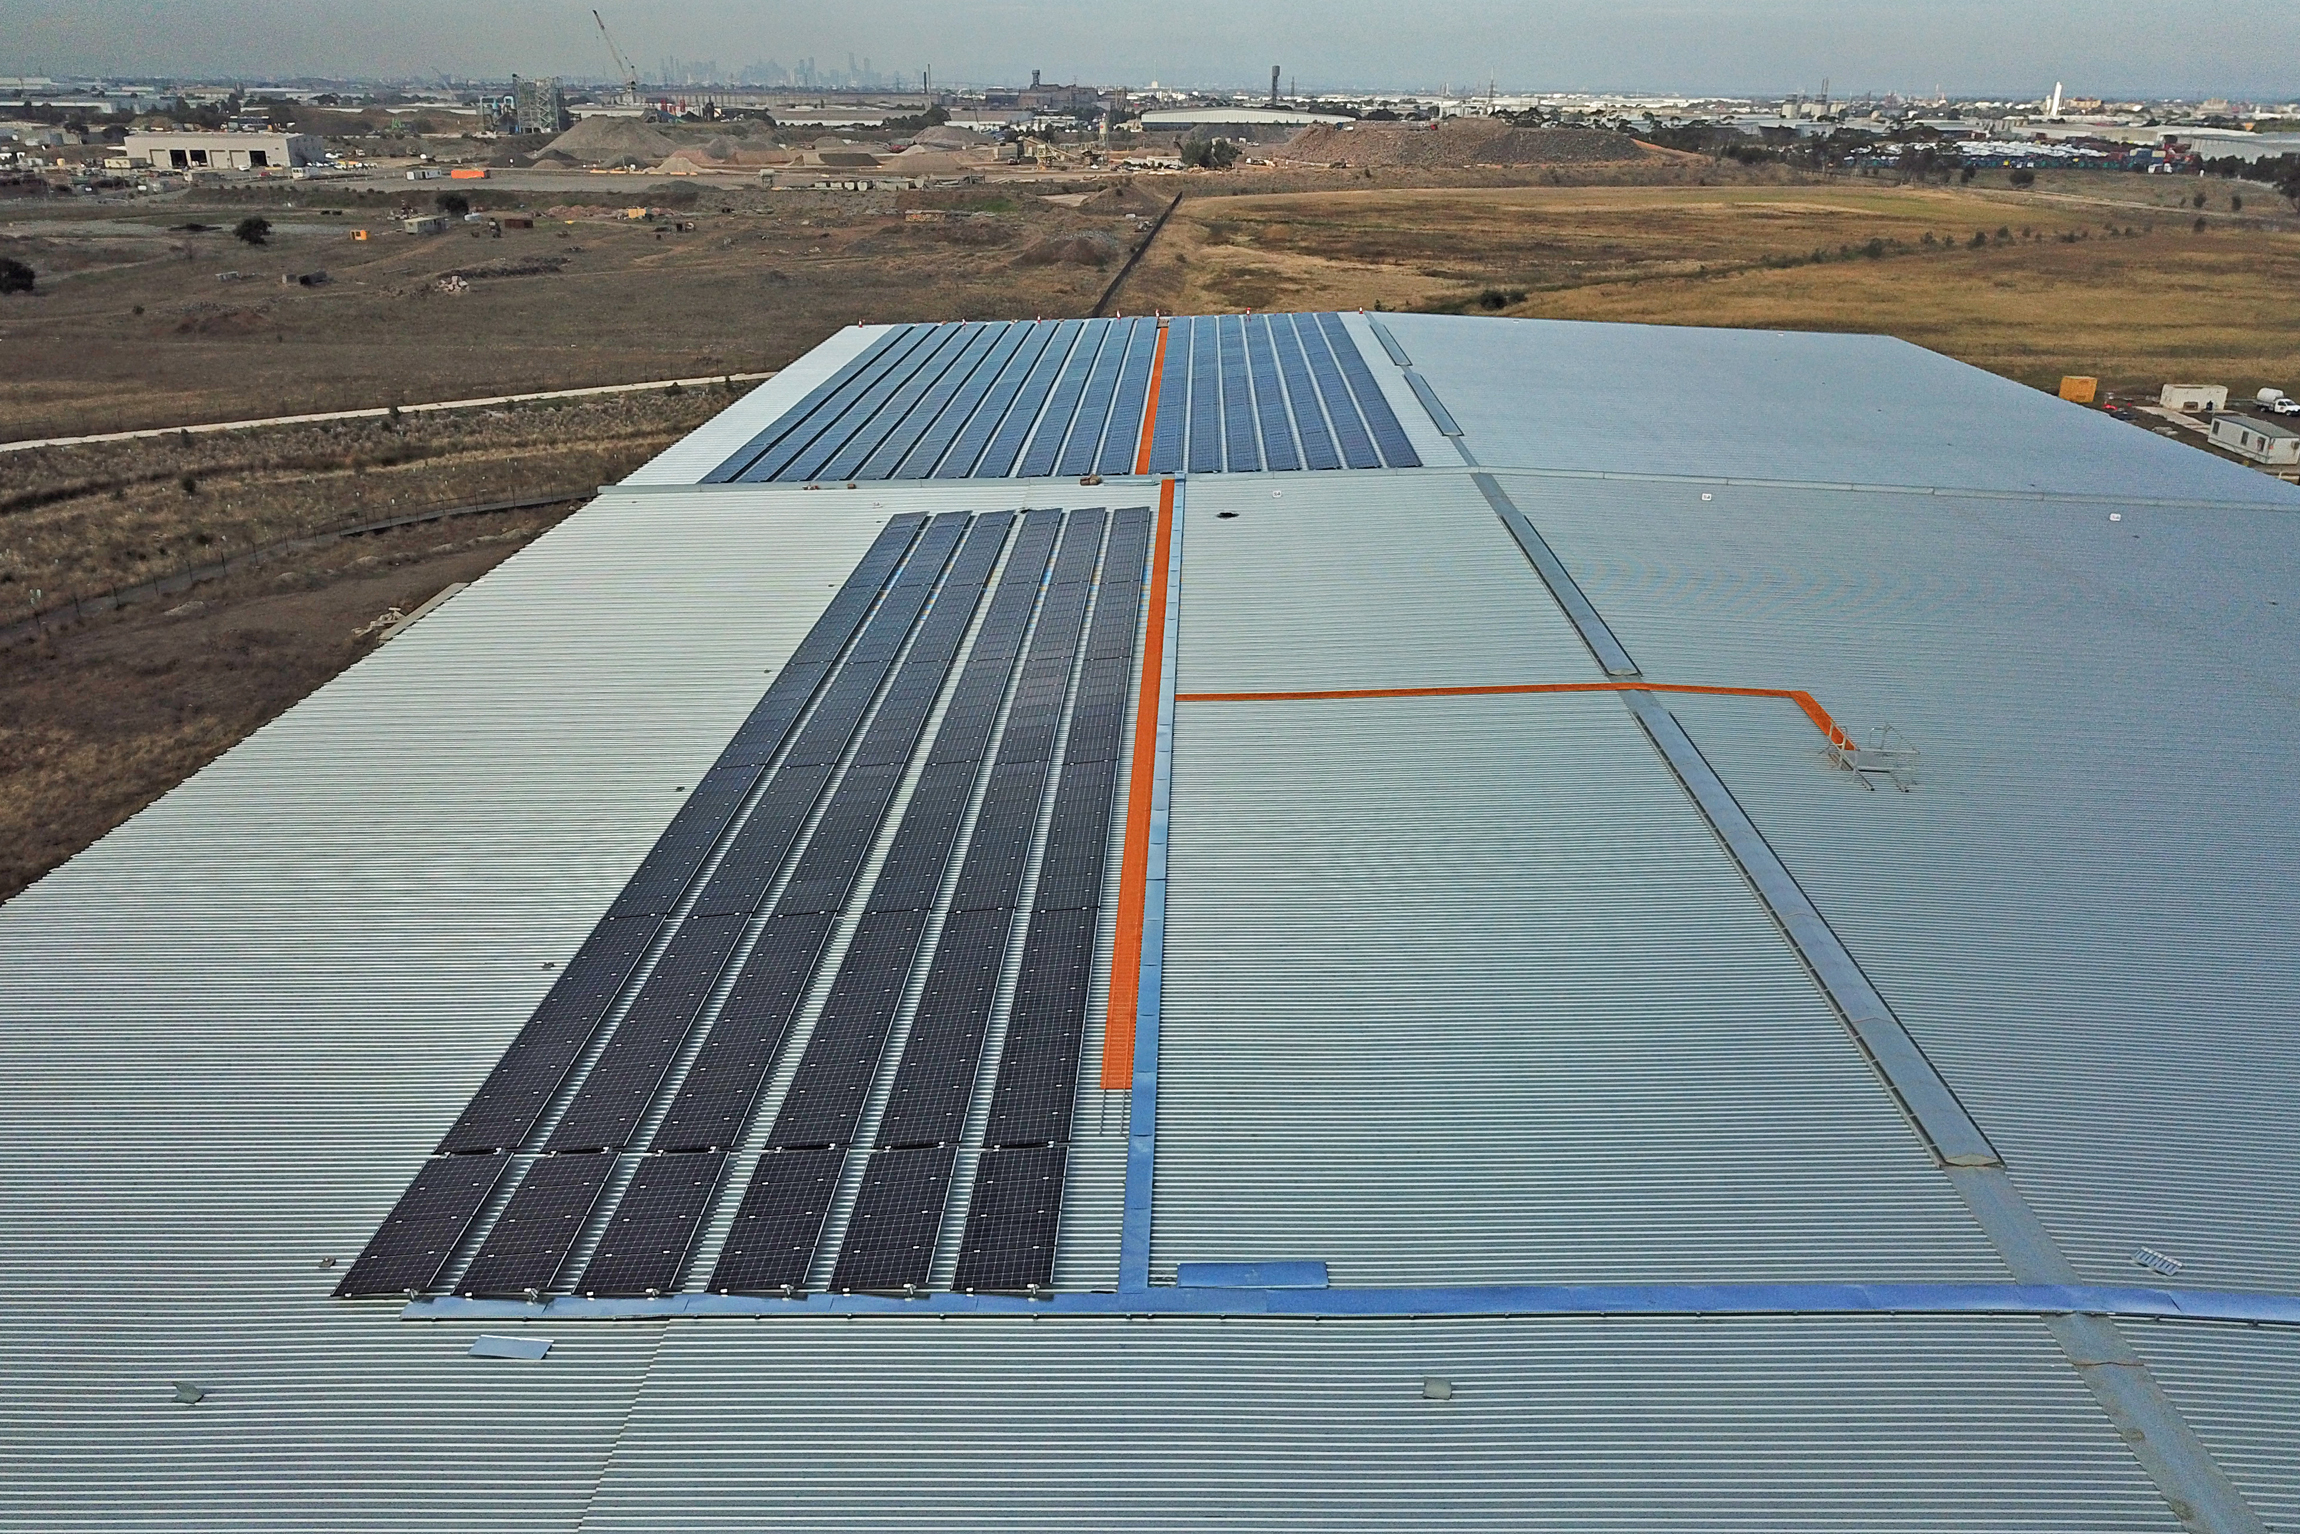 Partnering with Epho to install a cold storage renewable energy solution